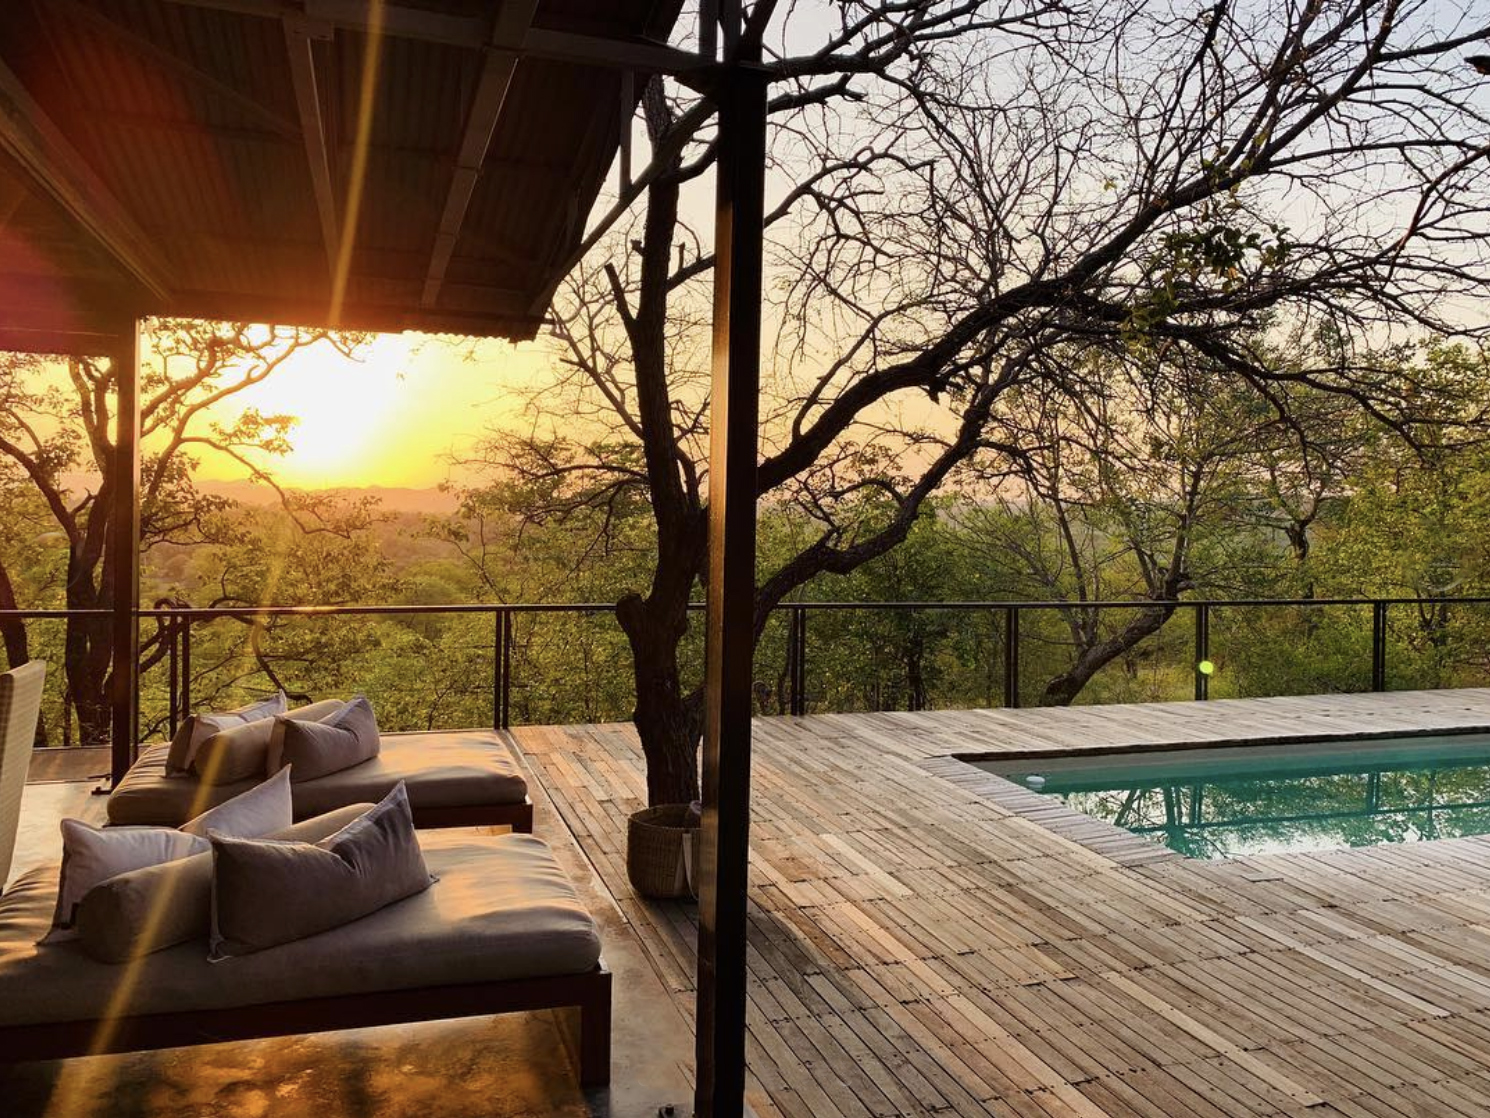 @escobarnic   captured a magnificent sunrise from the pool deck before grabbing a quick cup of coffee and hopping into the Land Rover for the early morning game drive.